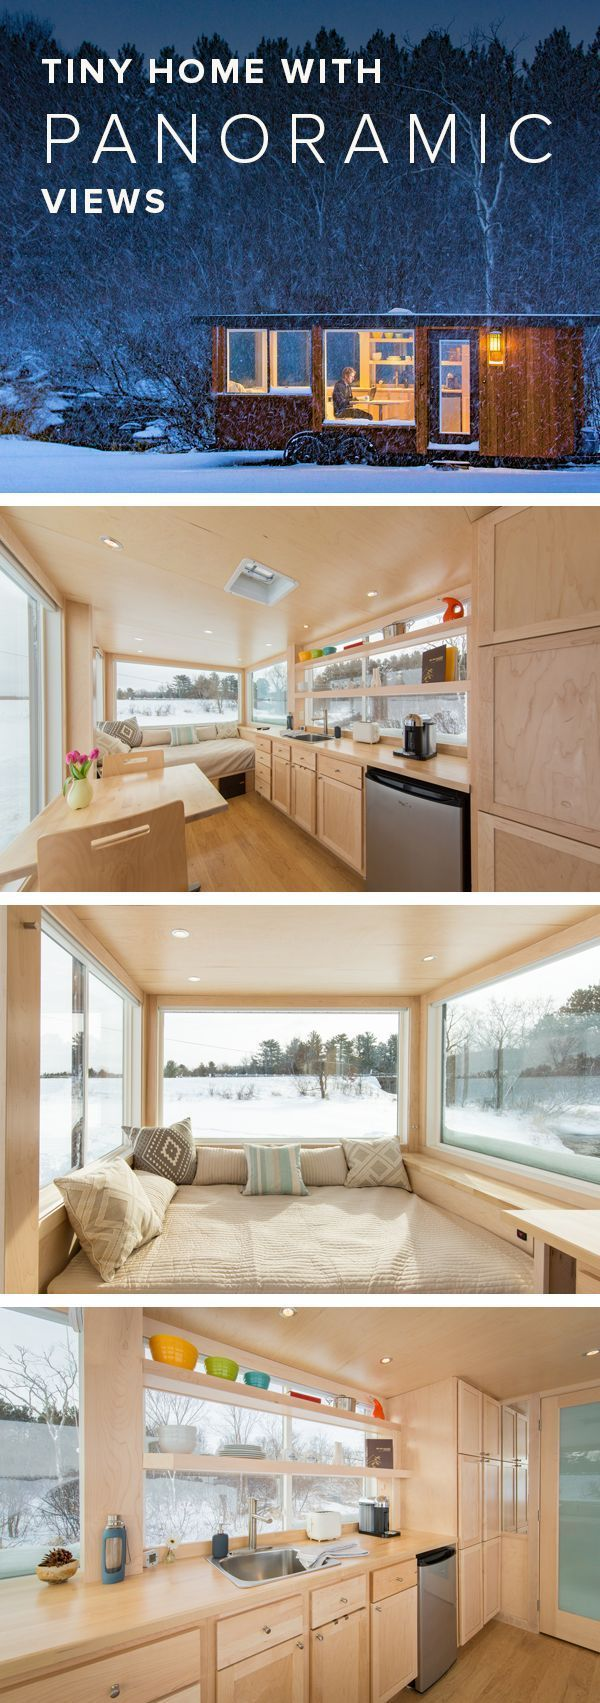 Home interior for small house  best small houses images on pinterest  tiny house cabin micro